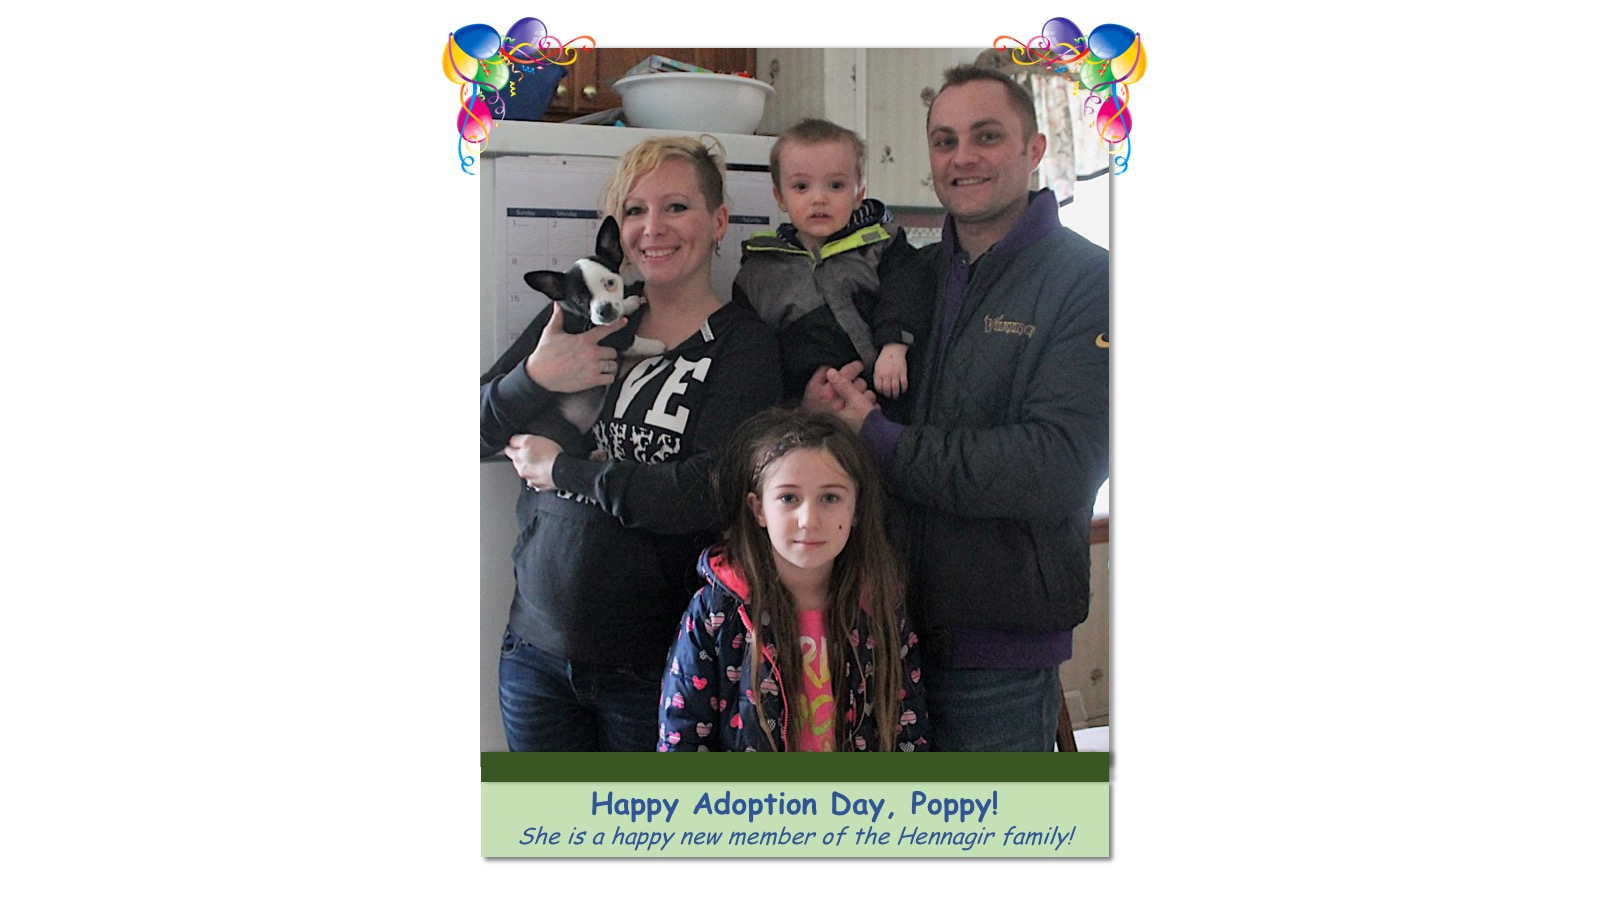 Poppy_Adoption_Photo_2018.jpg